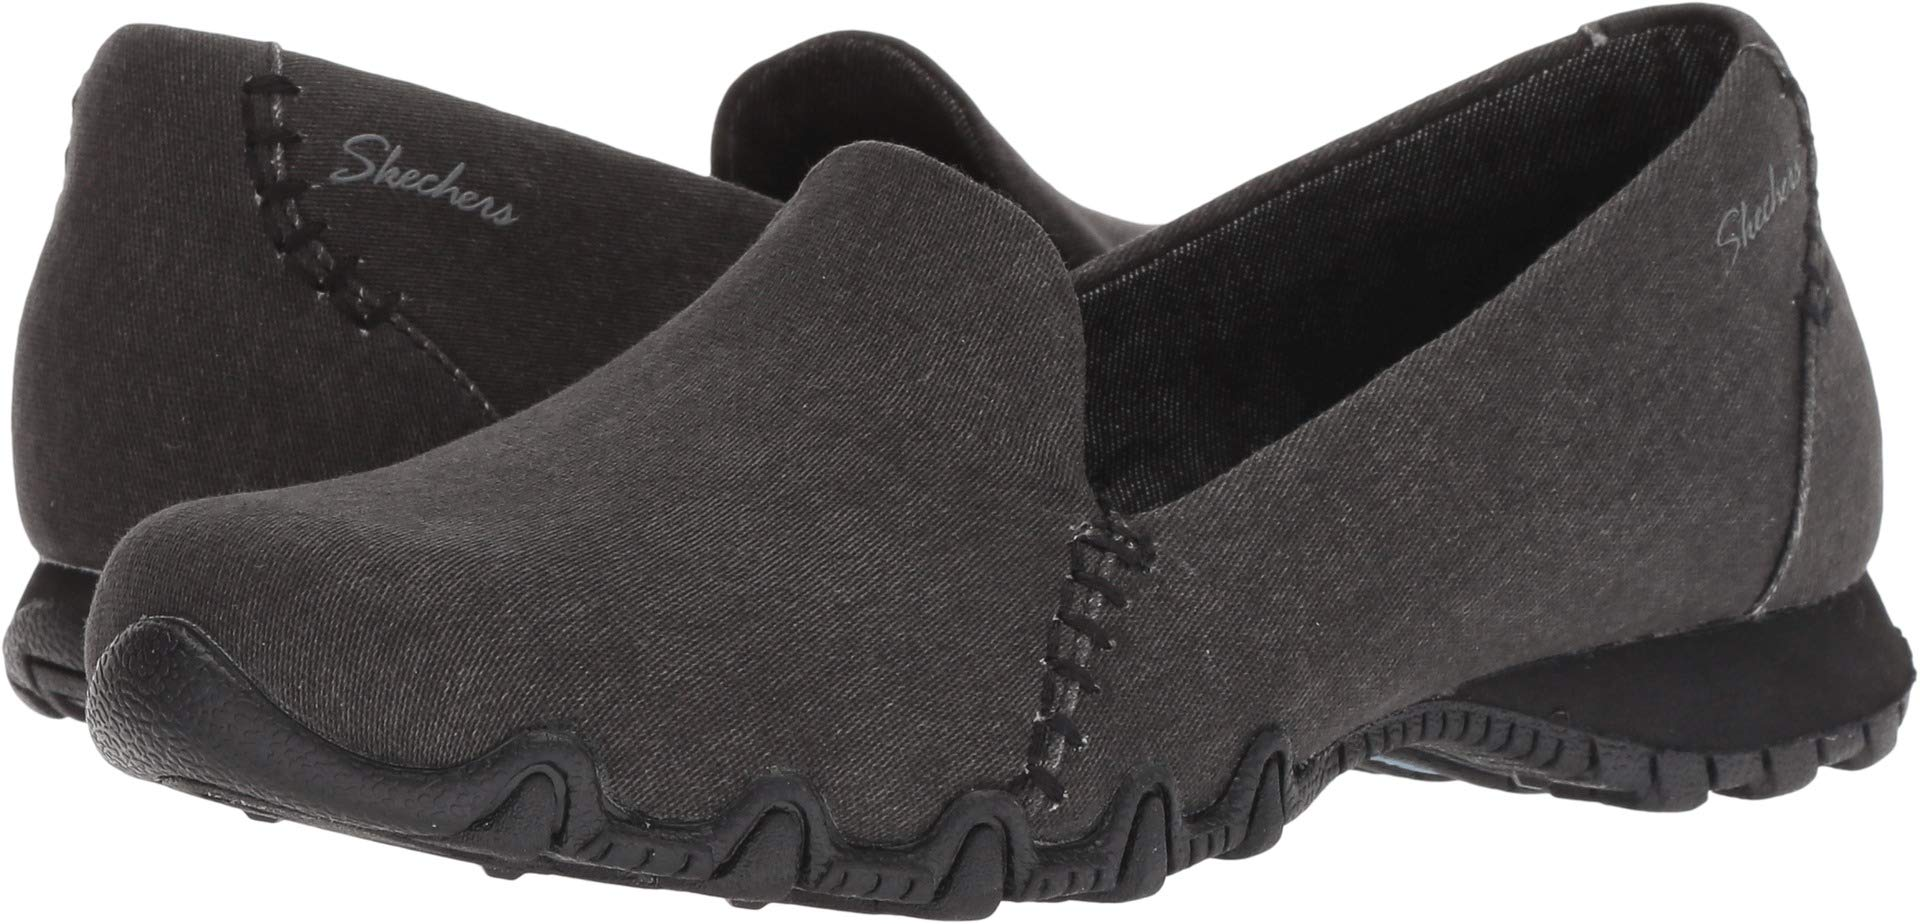 5ebe6e67eb5e0 Skechers Relaxed Fit Bikers Smokin Womens Slip On Loafers Black 7.5